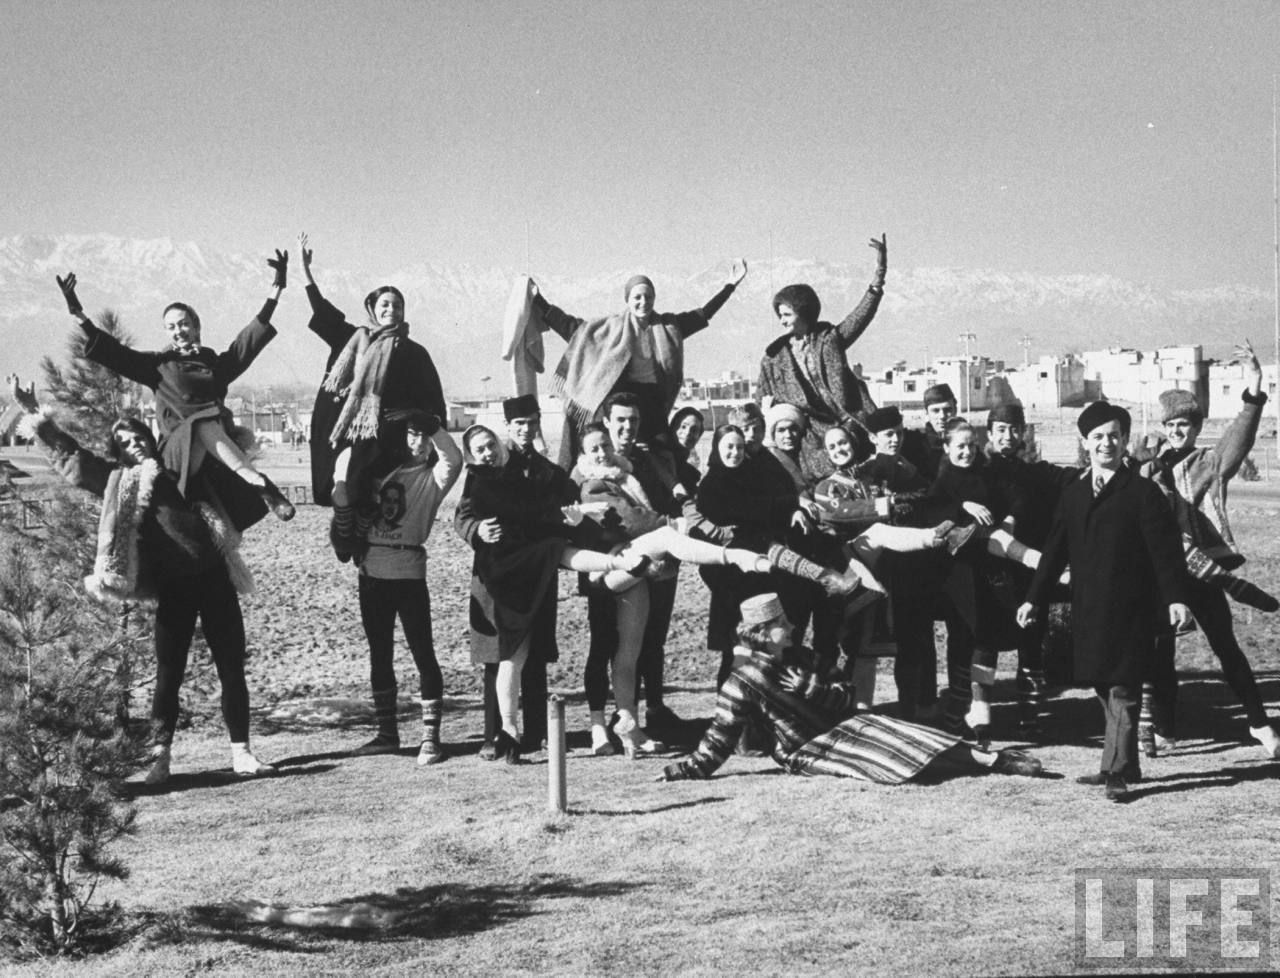 In 1963 the joffrey ballet visited kabul afghanistan